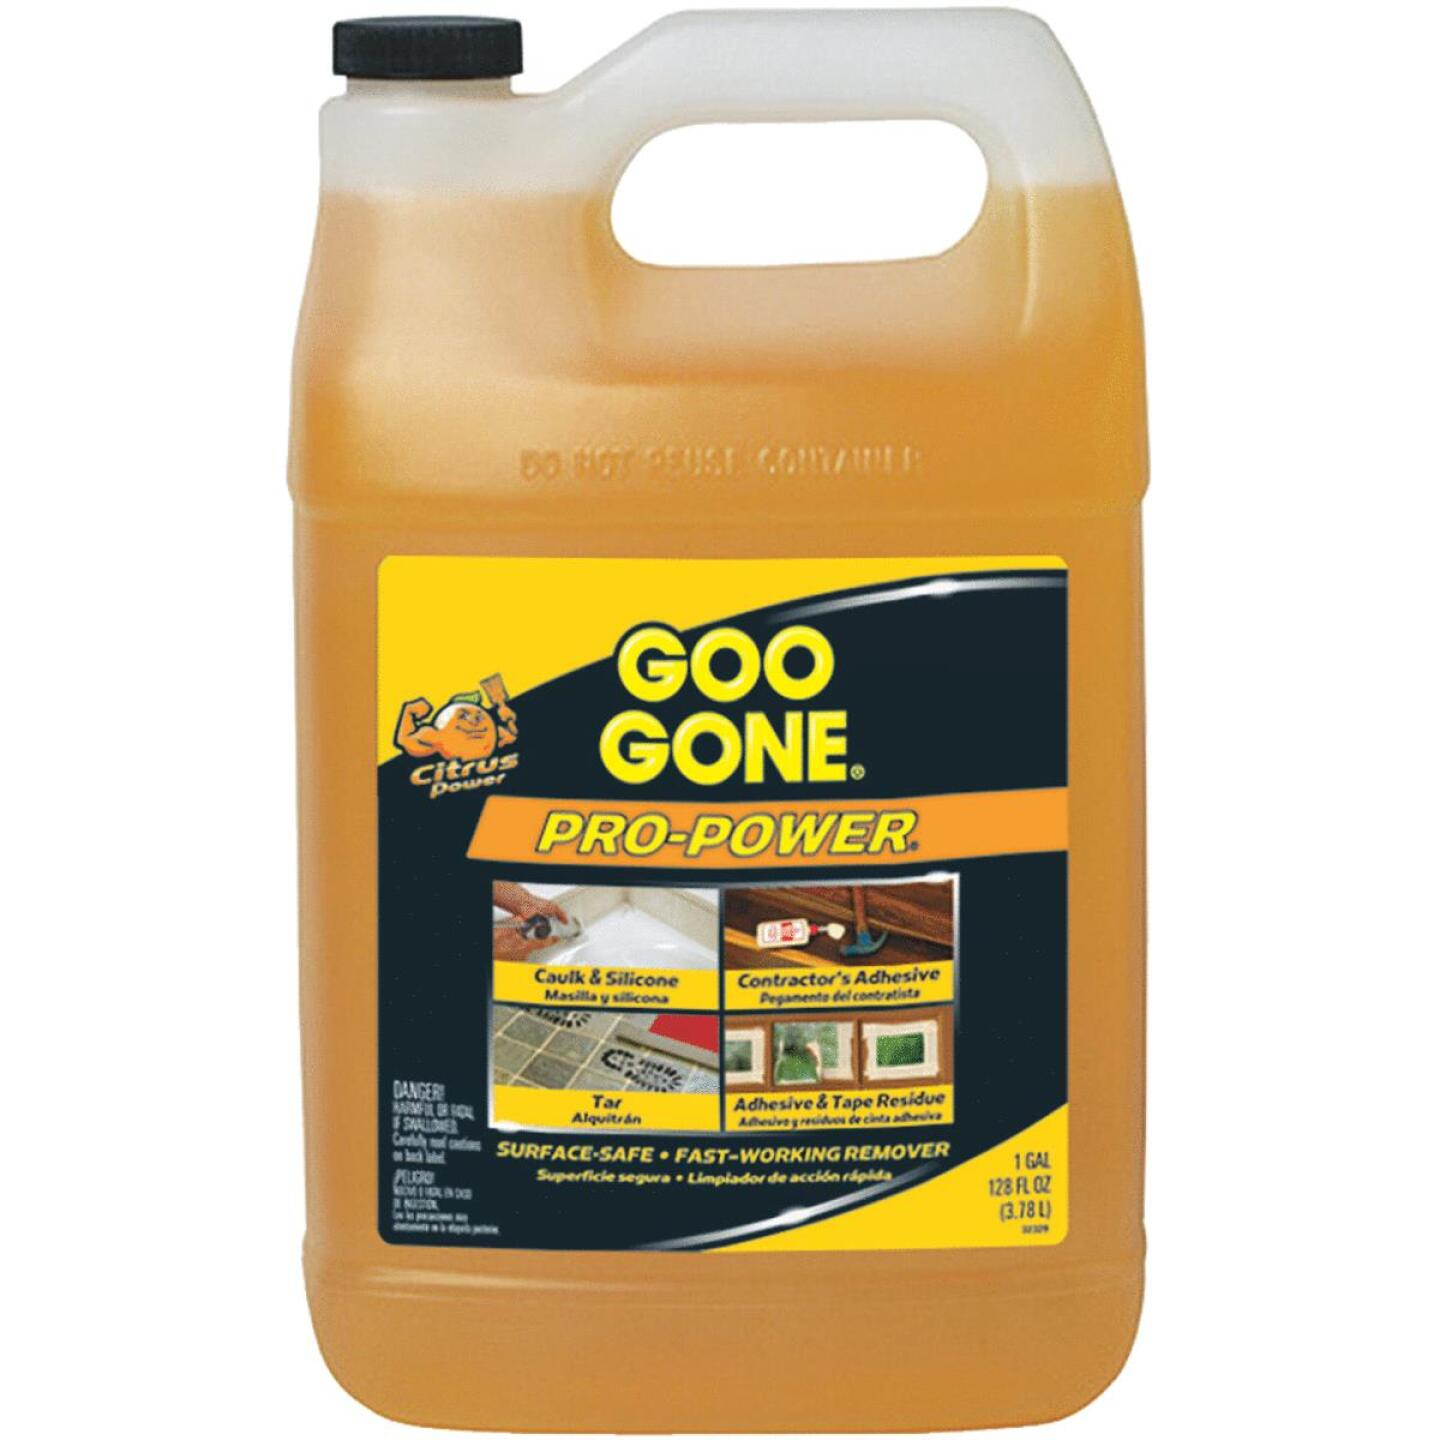 Goo Gone 1 Gal. Pro-Power Adhesive Remover Image 187